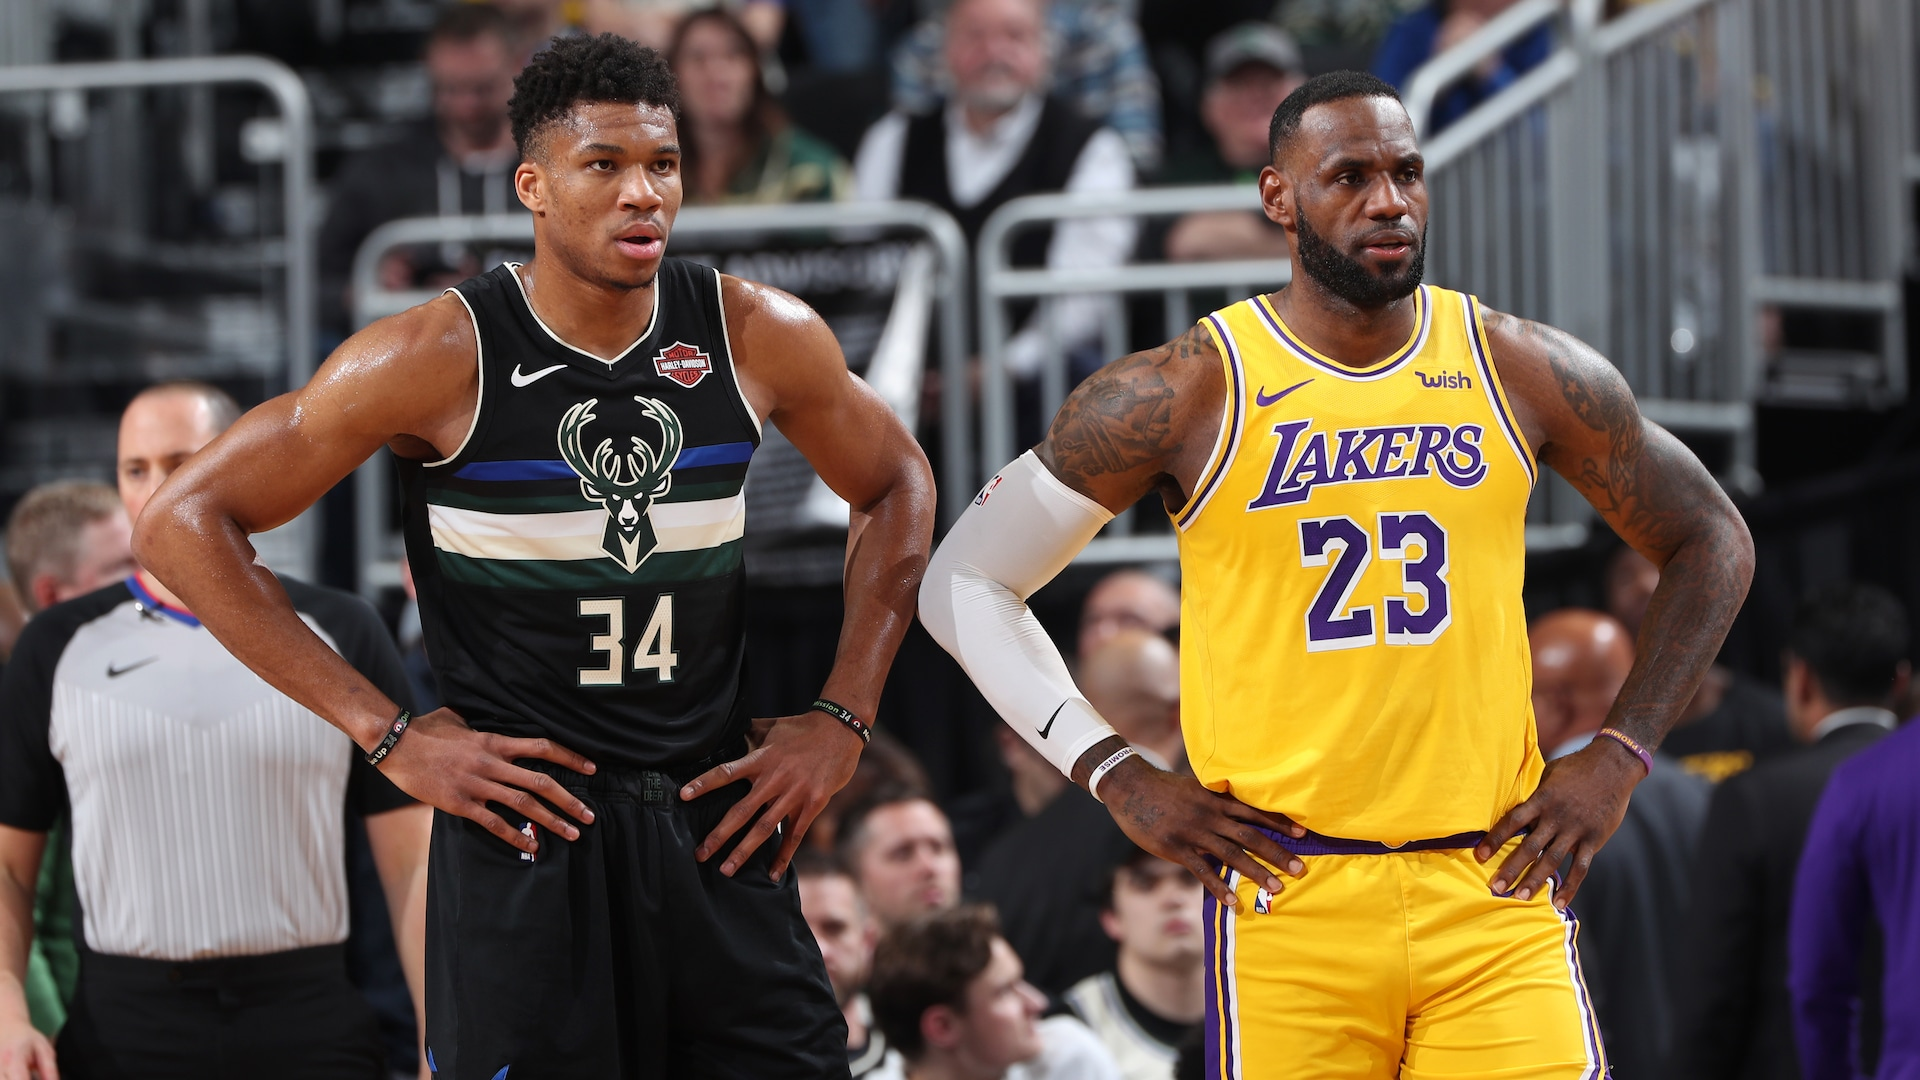 LeBron ready to clash with biggest threats in Giannis, Kawhi